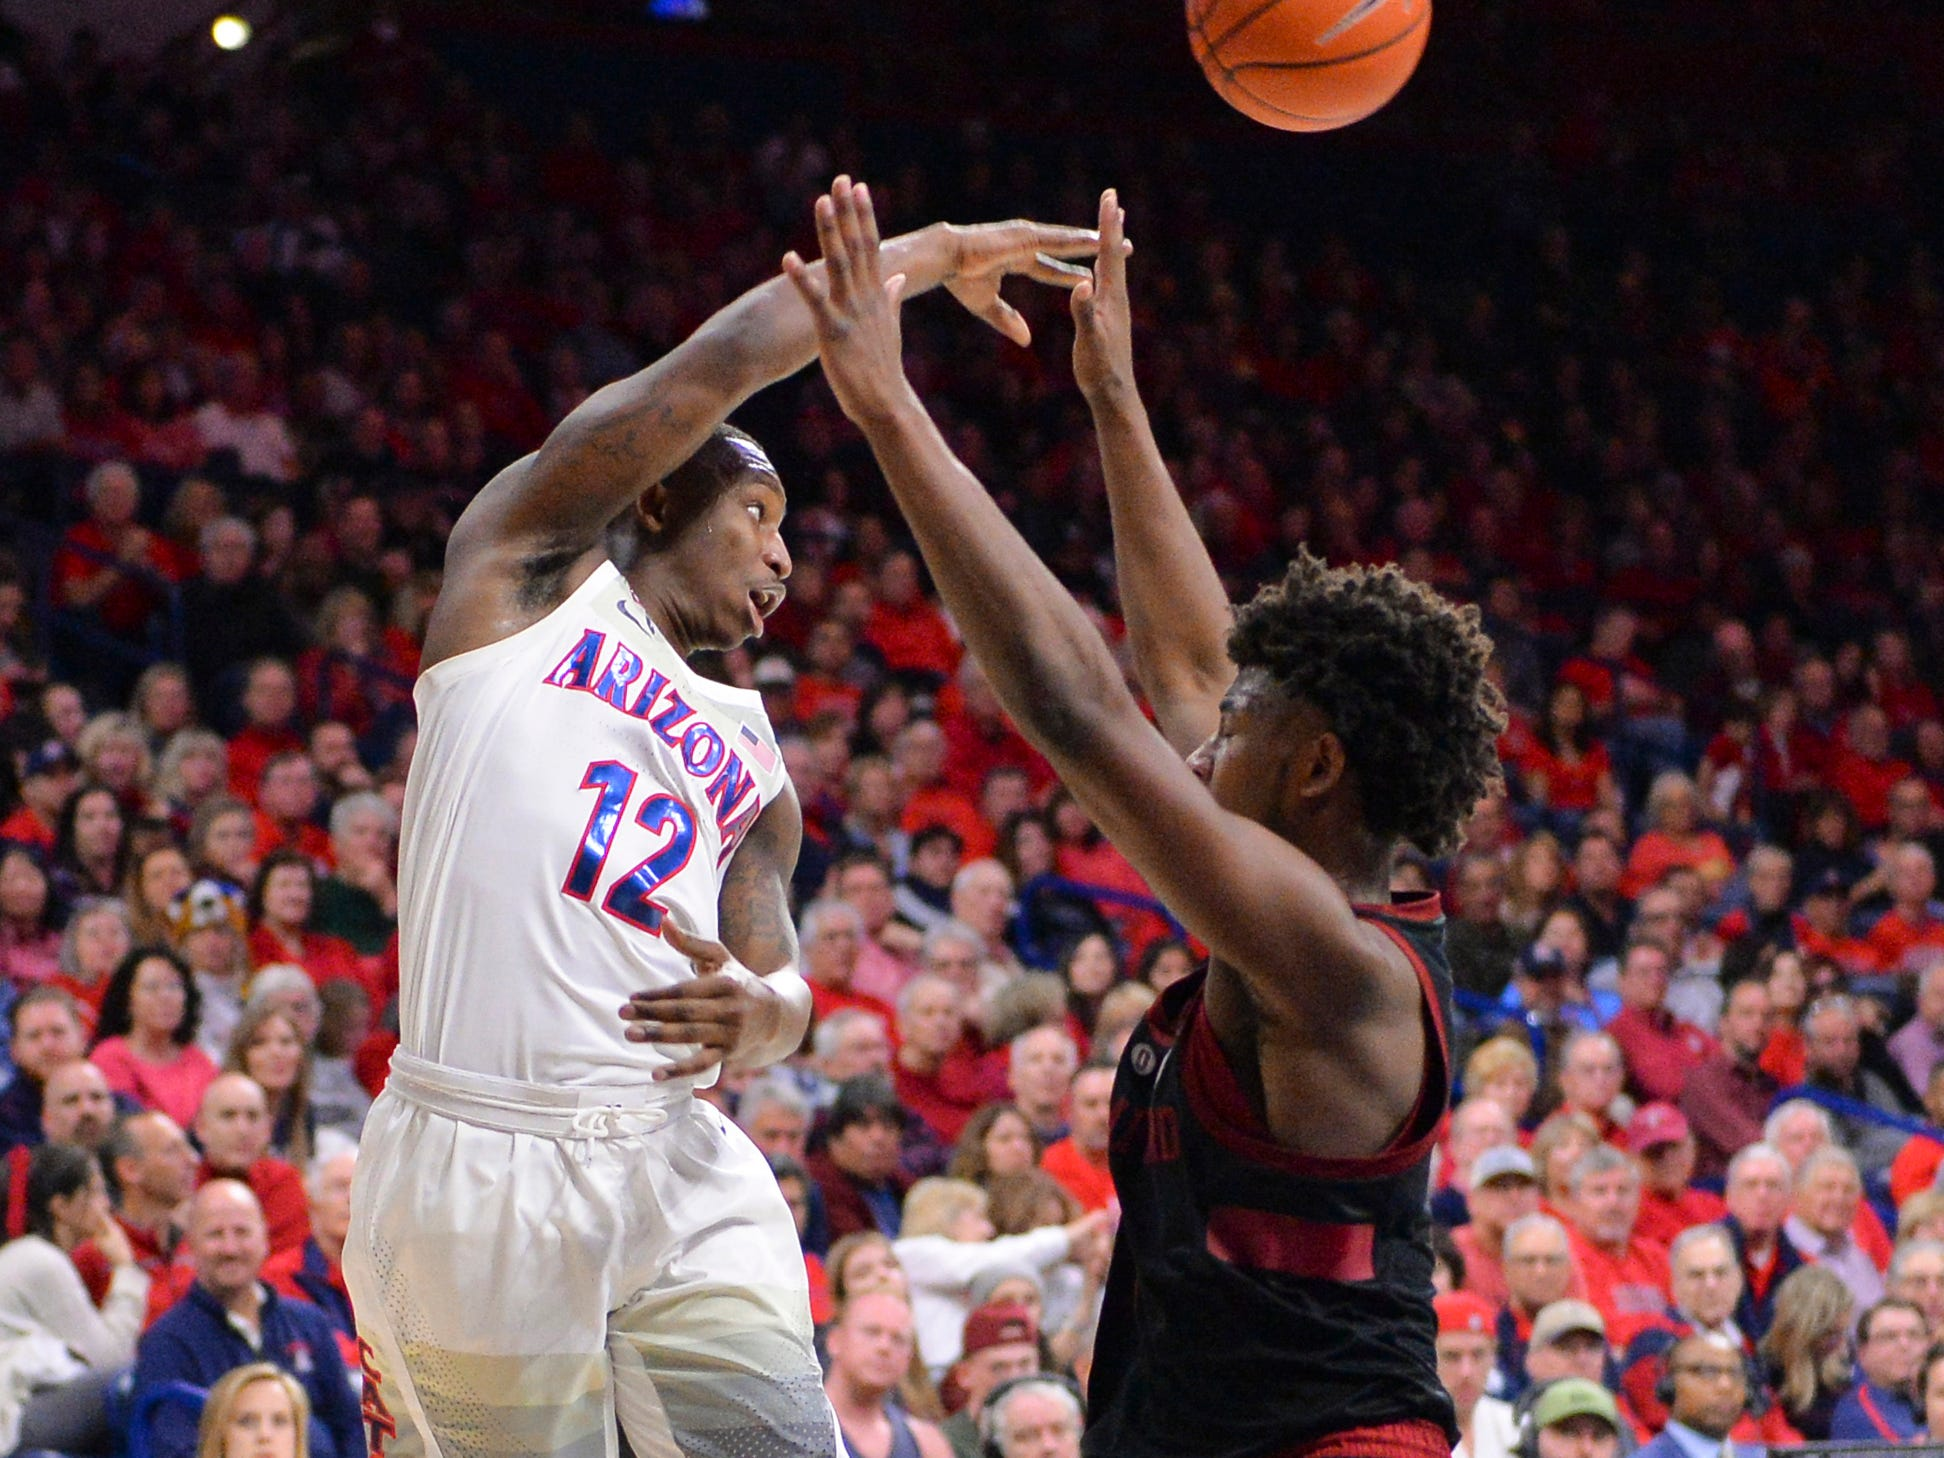 Feb 24, 2019: Arizona Wildcats guard Justin Coleman (12) passes the ball over Stanford Cardinal guard Daejon Davis (1) during the second half at McKale Center.